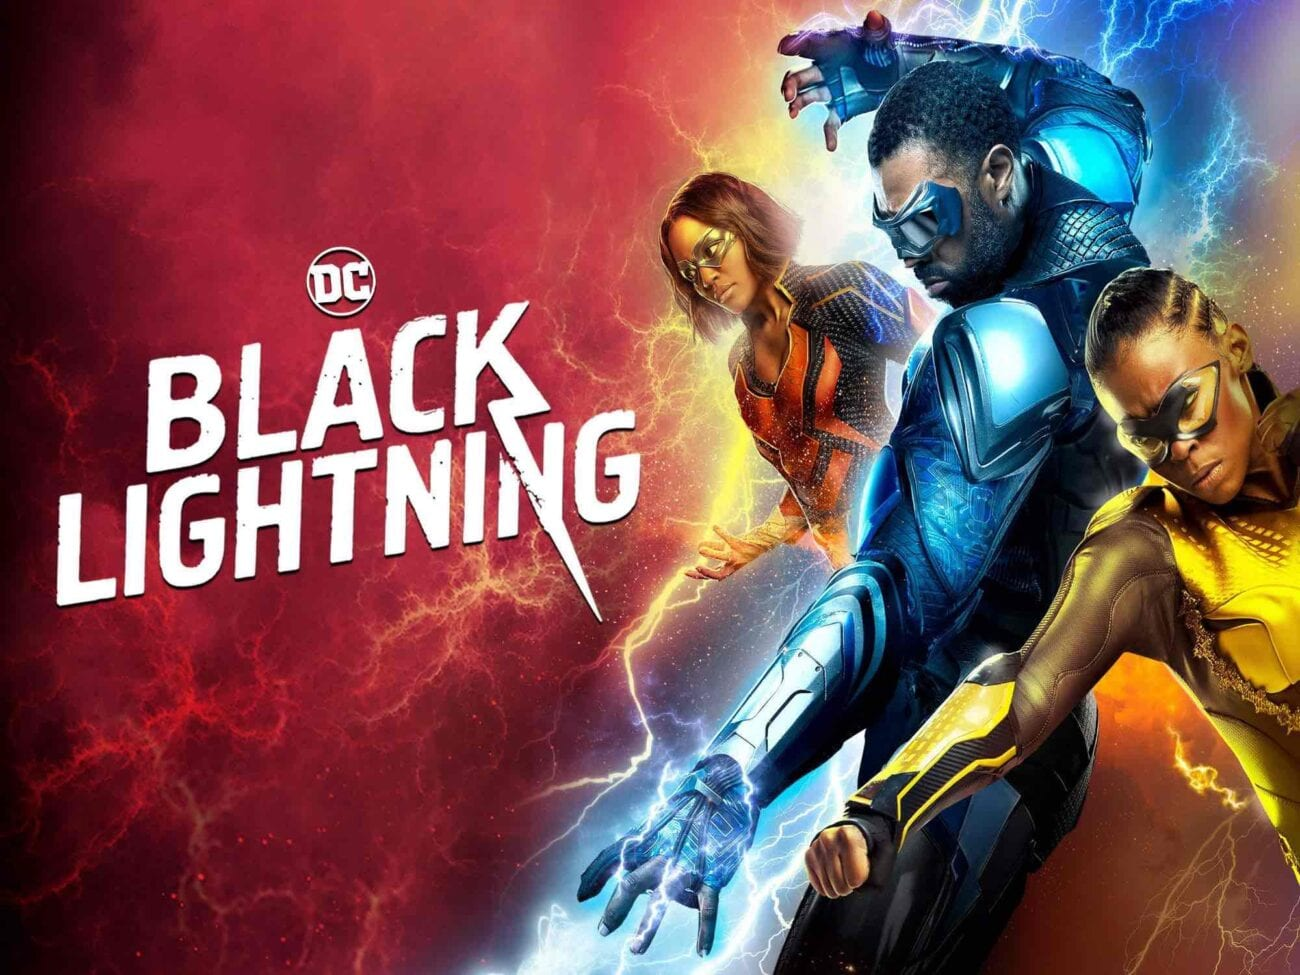 It looks like 'Black Lightning' will be spinning off a series of its own. What can we expect from the cast?